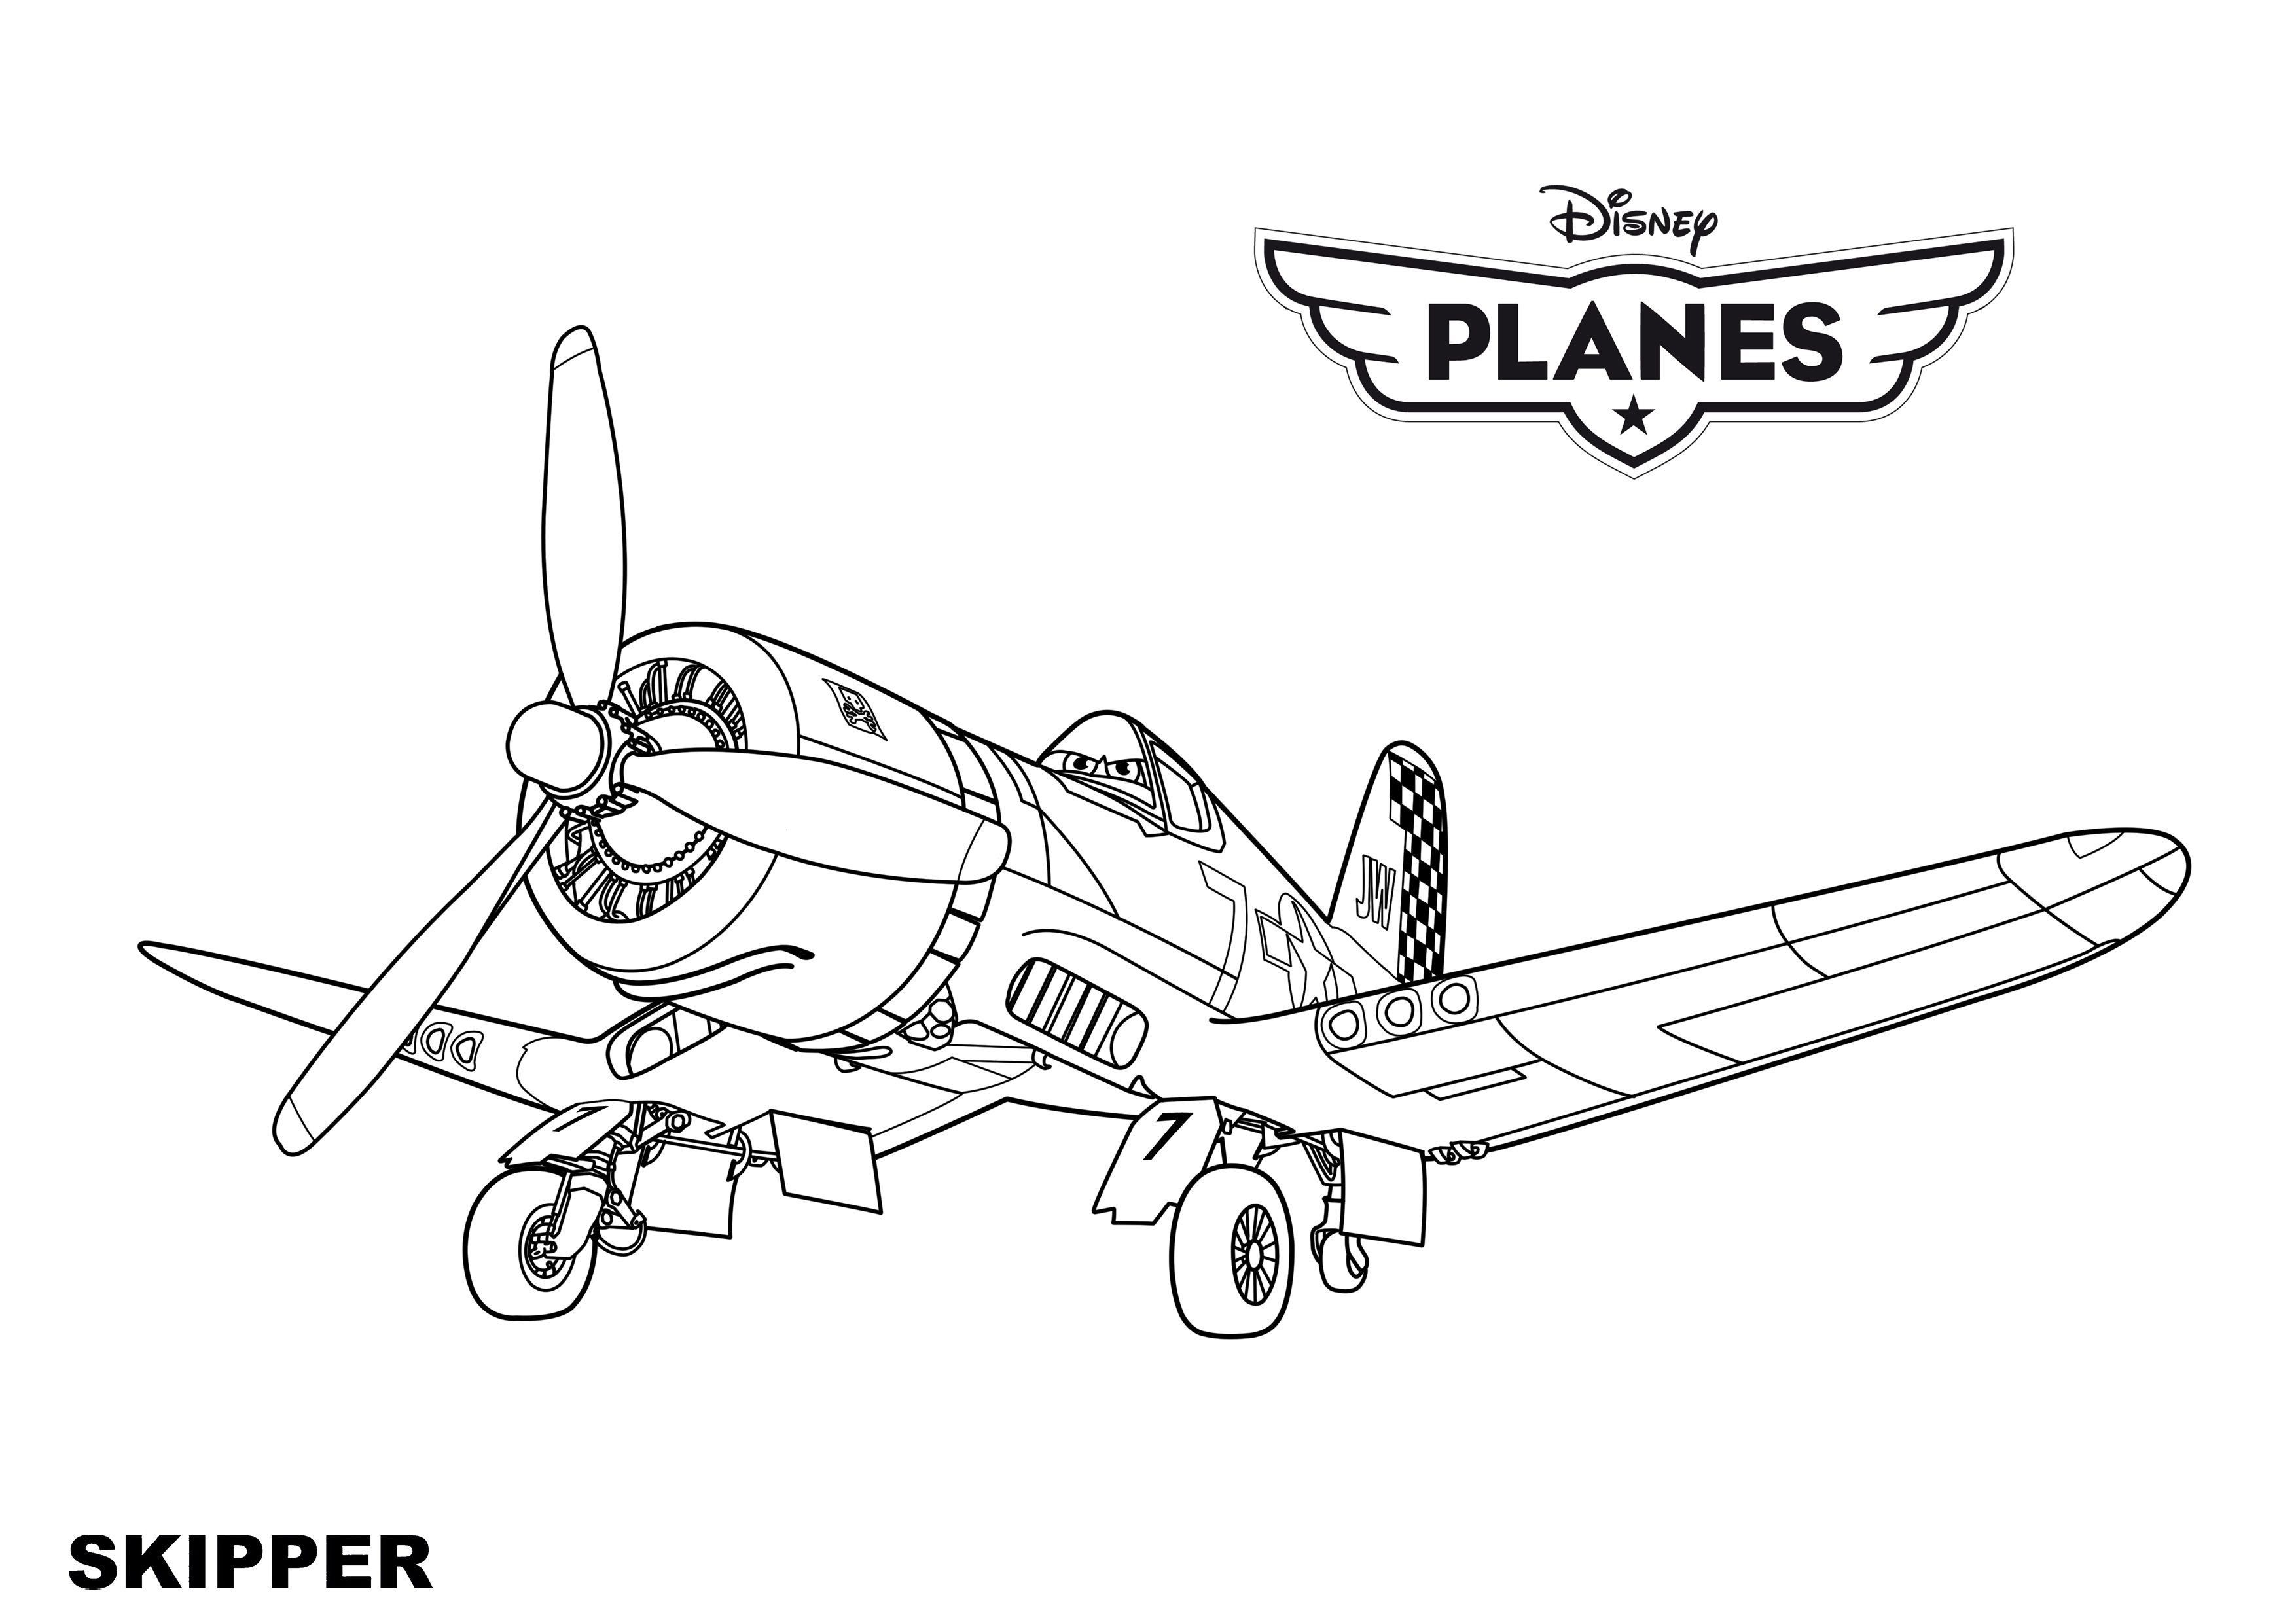 10 Disney Planes Characters Disney Planes Dusty Crophopper Disney Planes Ishani Russia Airplane Coloring Pages Disney Coloring Pages Coloring Pages For Boys